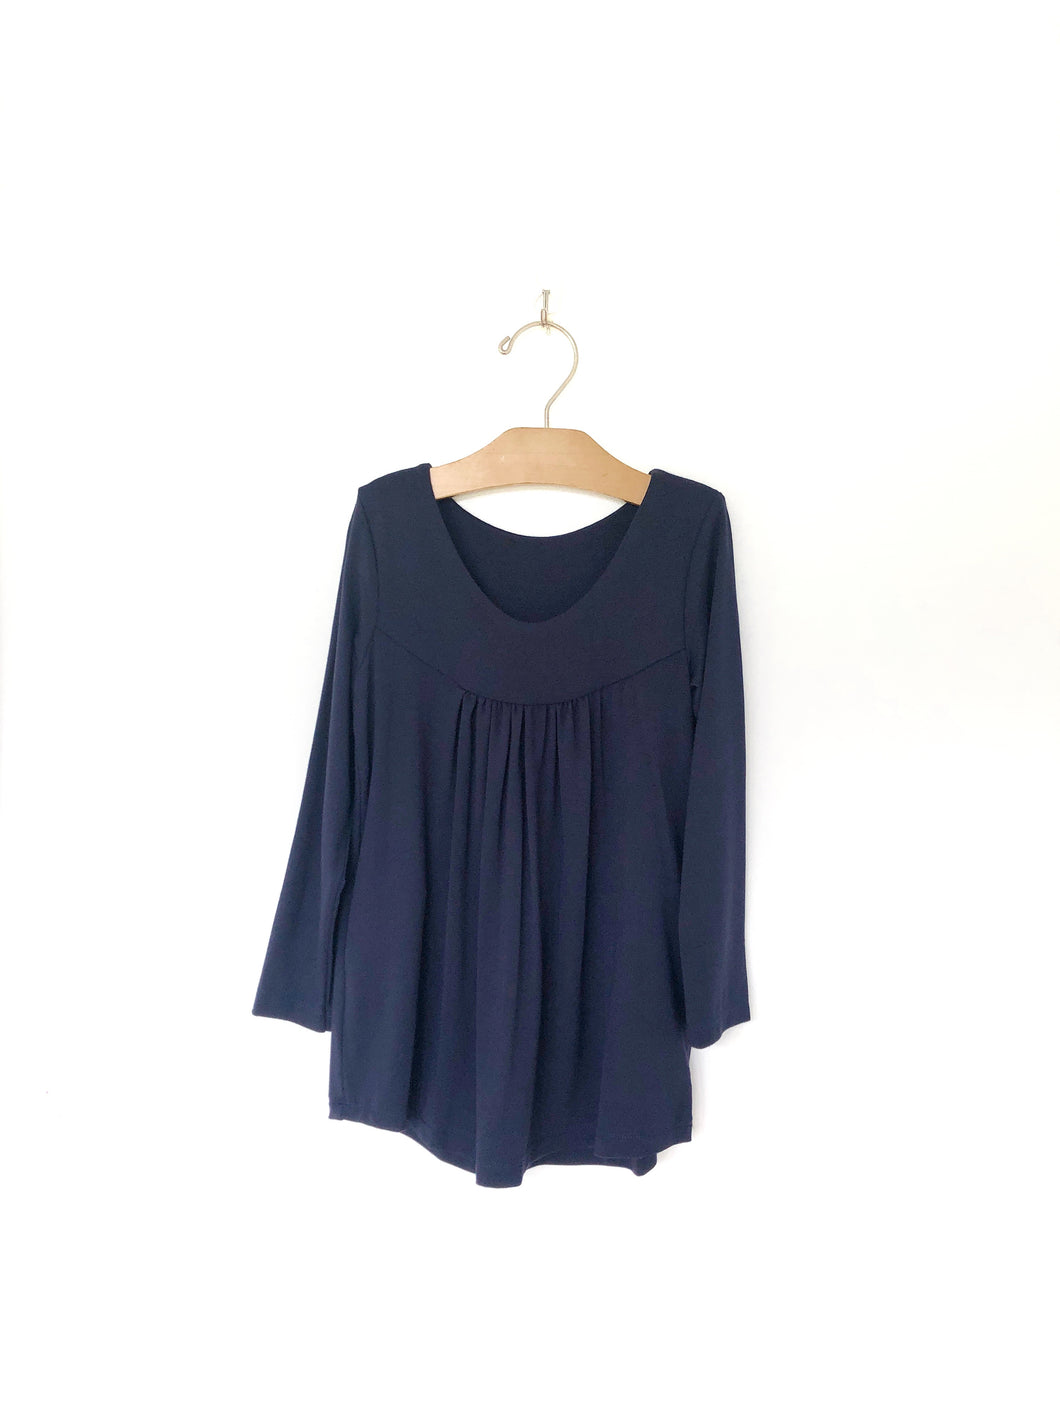 Ladies Niagra Top - Navy